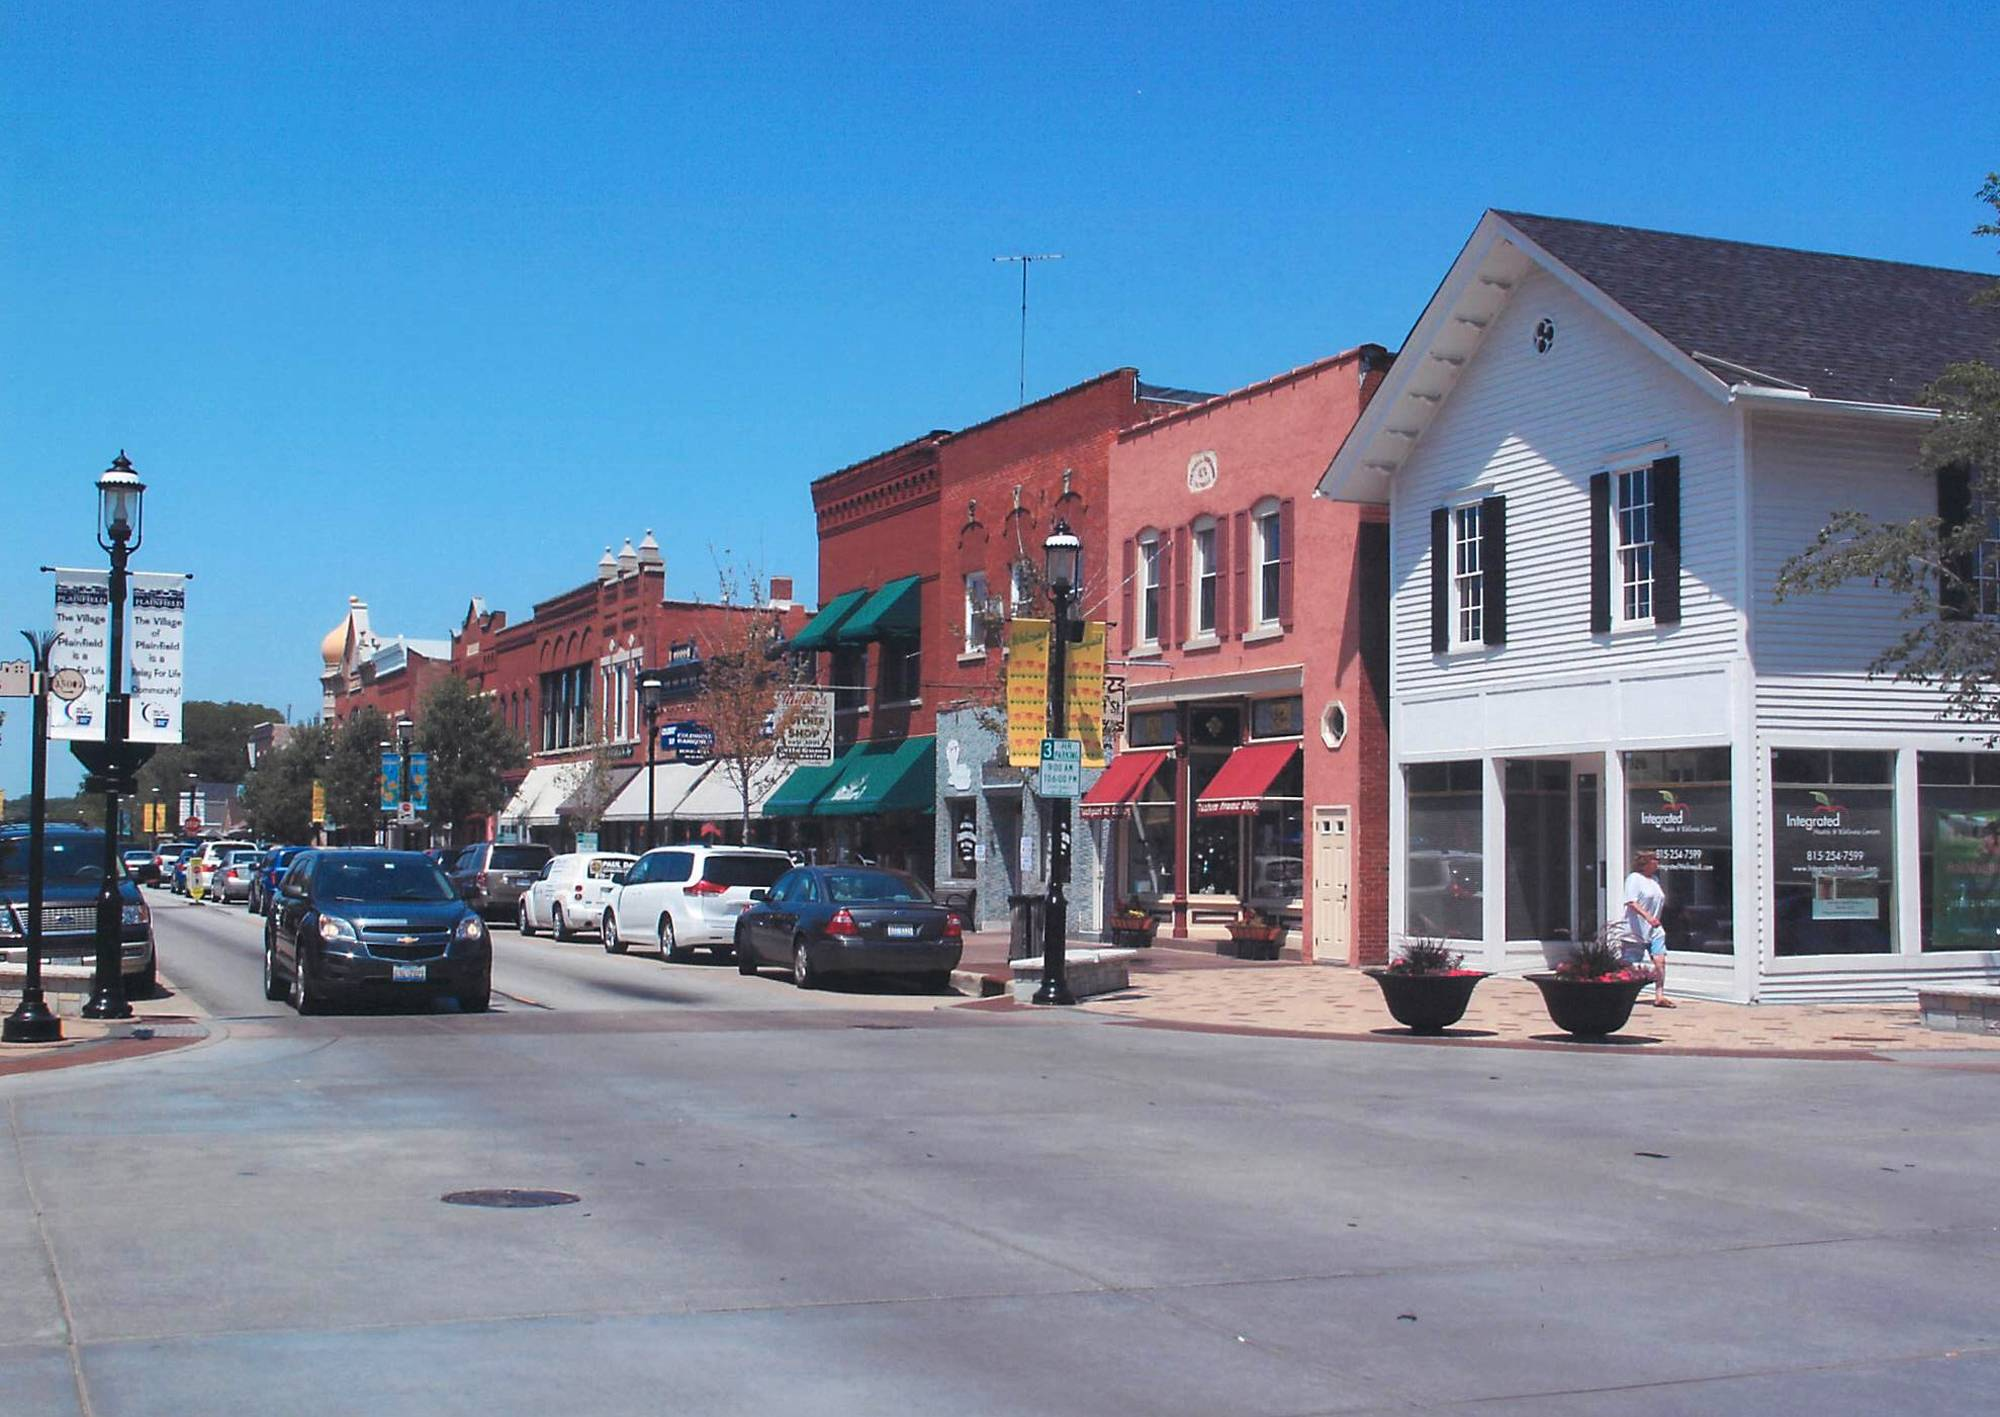 The historic district in Plainfield has been added to the National Register of Historic Places.